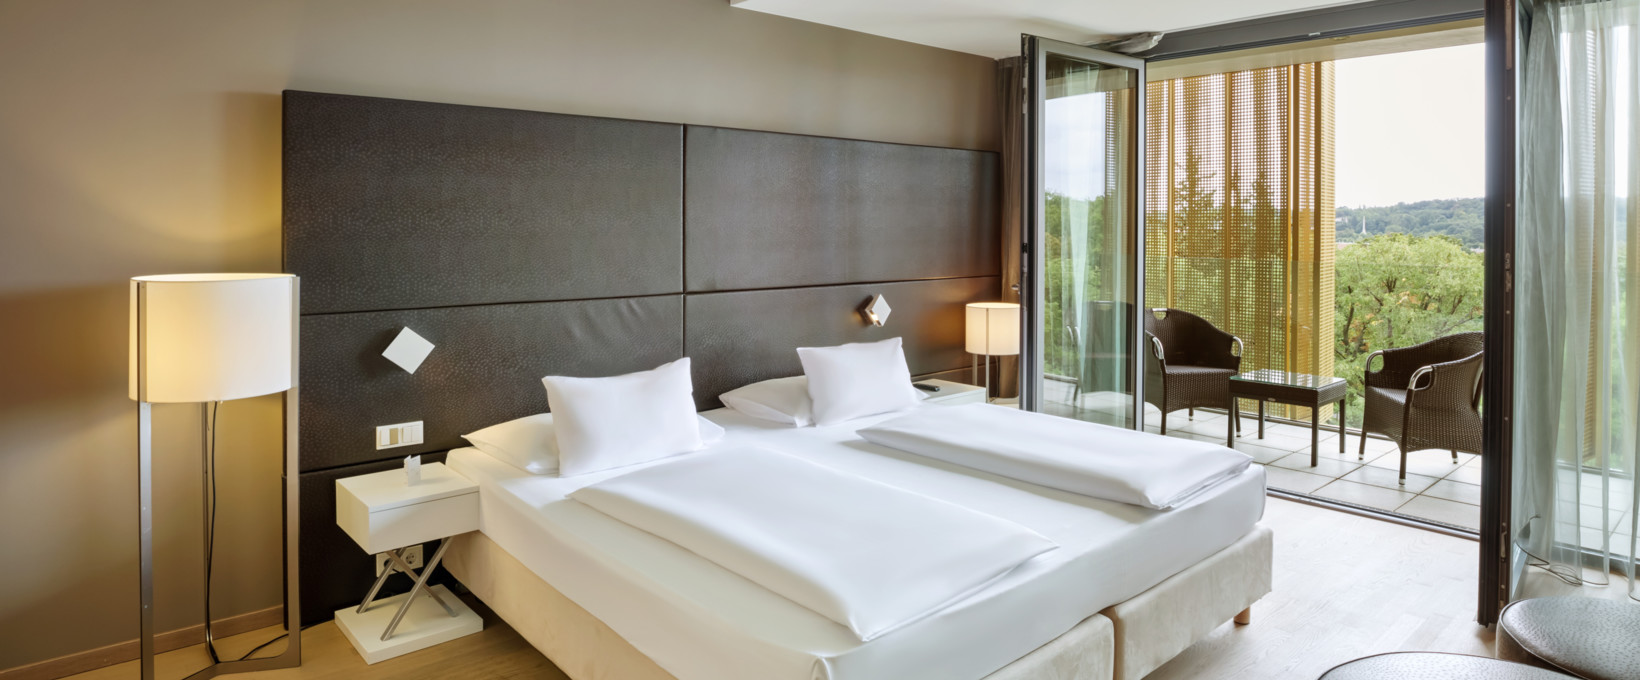 Suite bedroom with double bed | Radisson Blu Park Royal Palace Hotel in Vienna